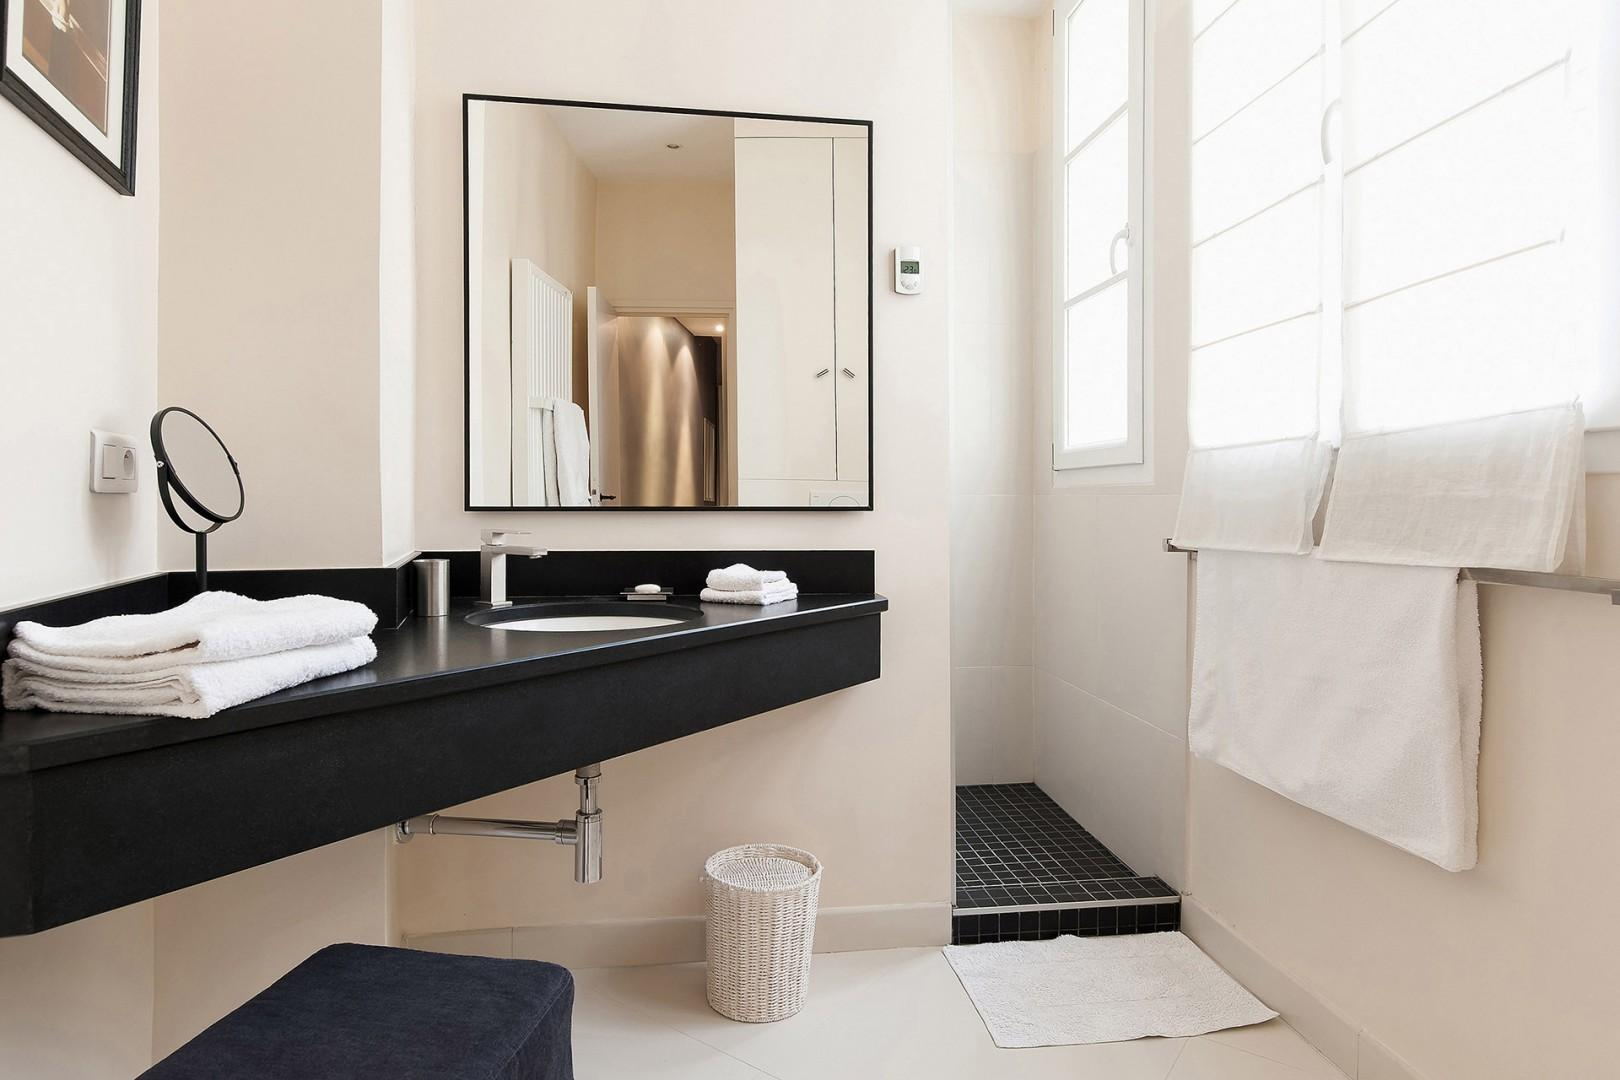 Start your day in this modern and sunny bathroom.